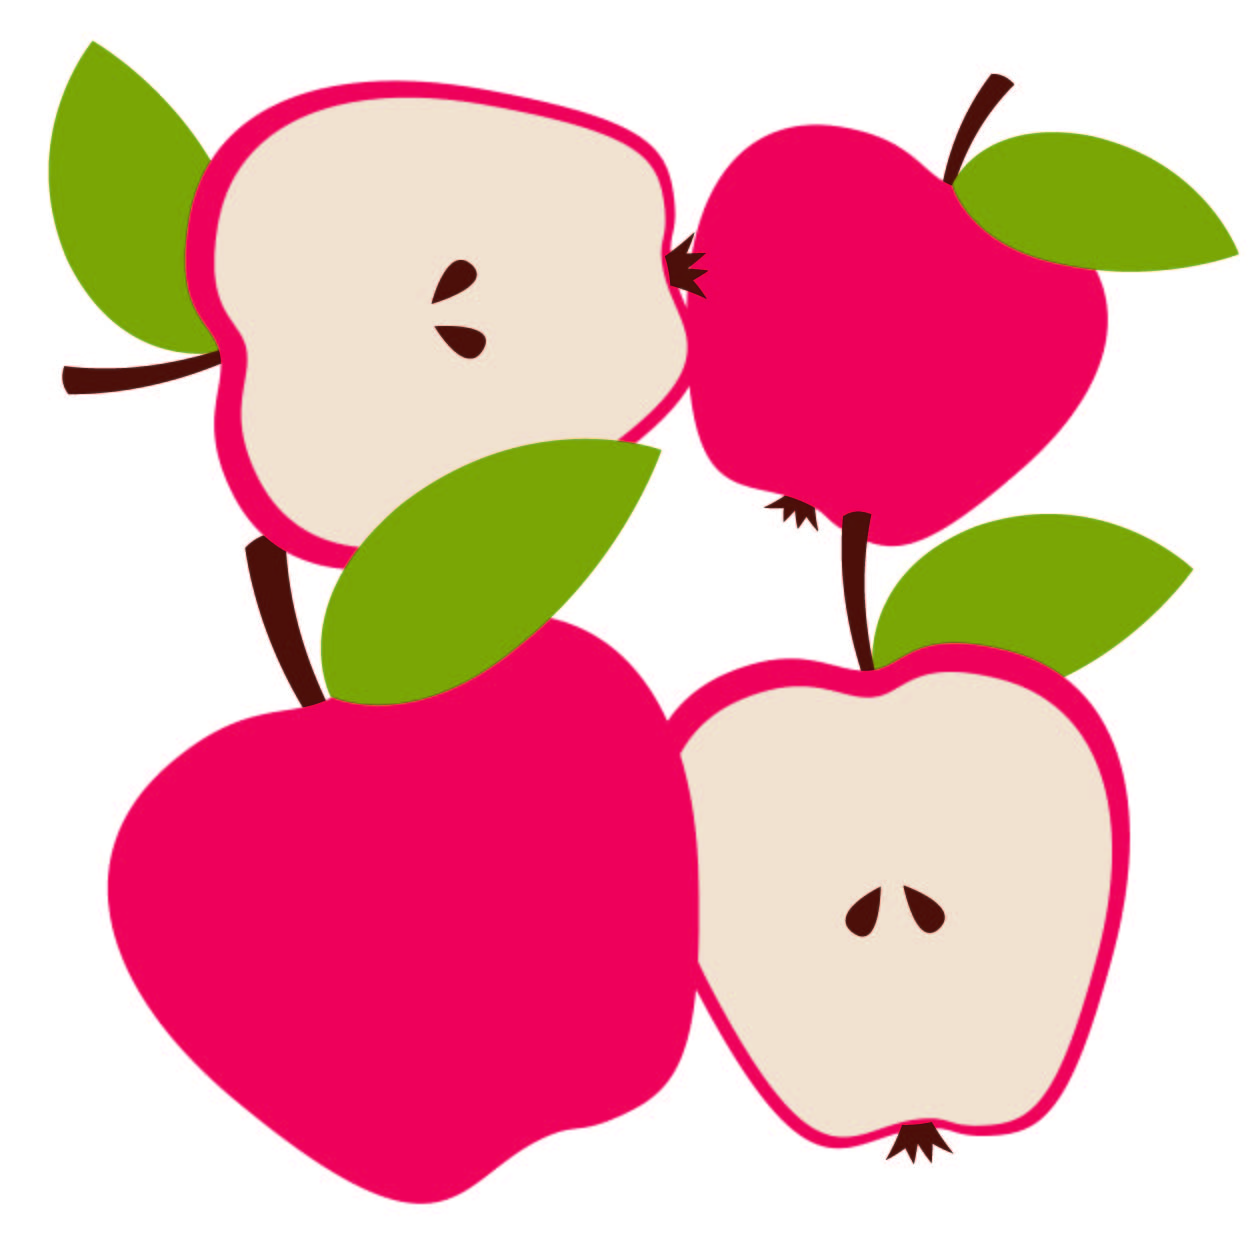 graphic regarding Printable Apple Pictures identified as No cost Apple Drop Banner Printable